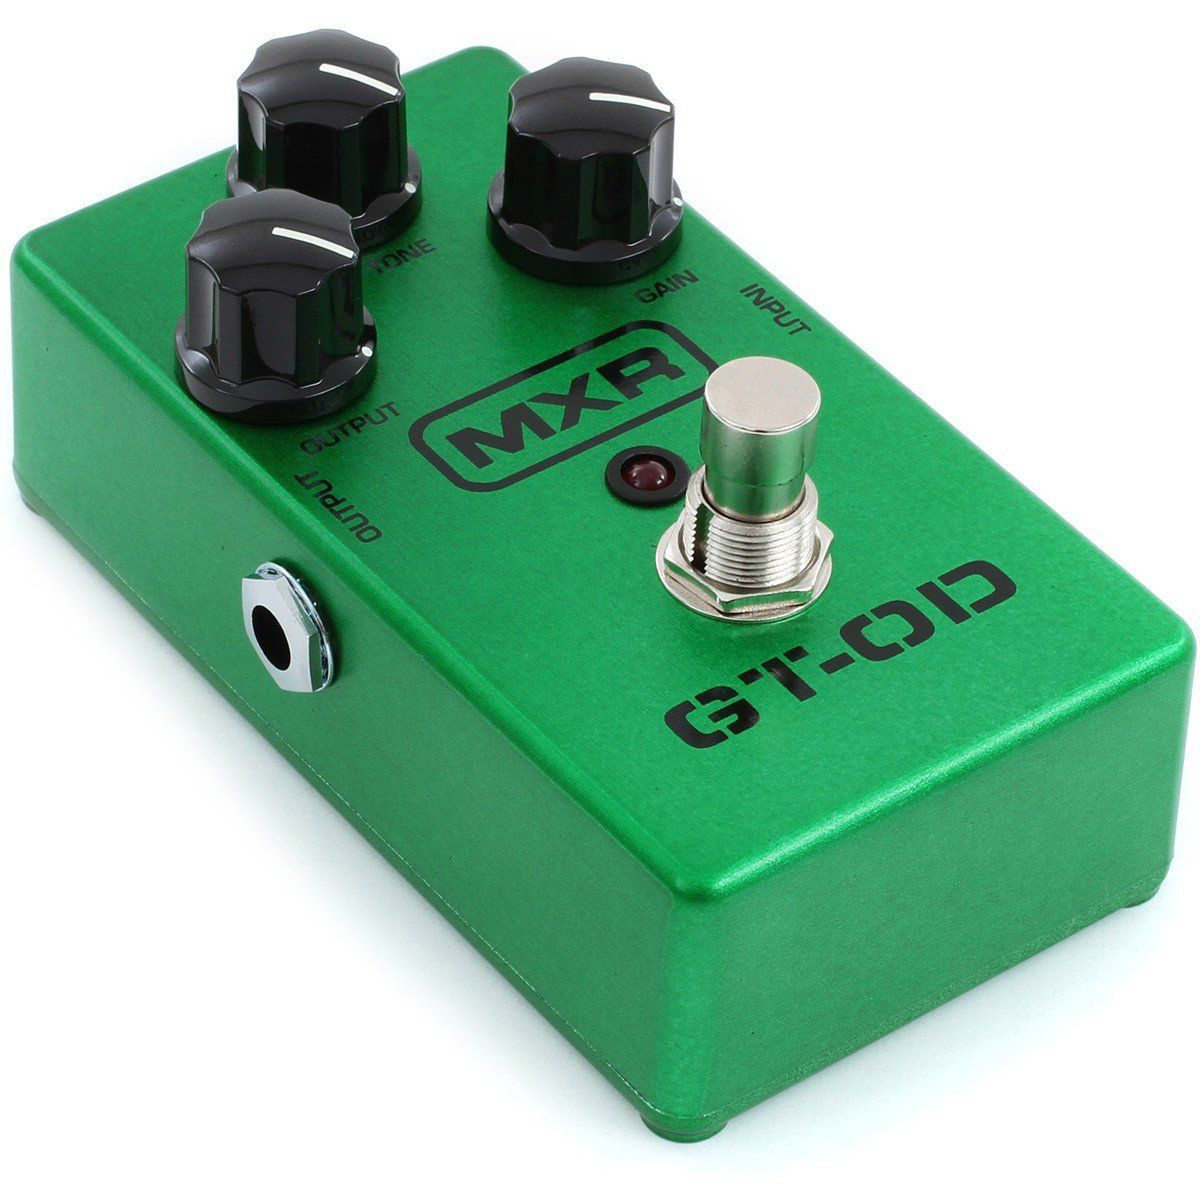 Mxr M193 GT-OD Overdrive Pedal Simples e Completo